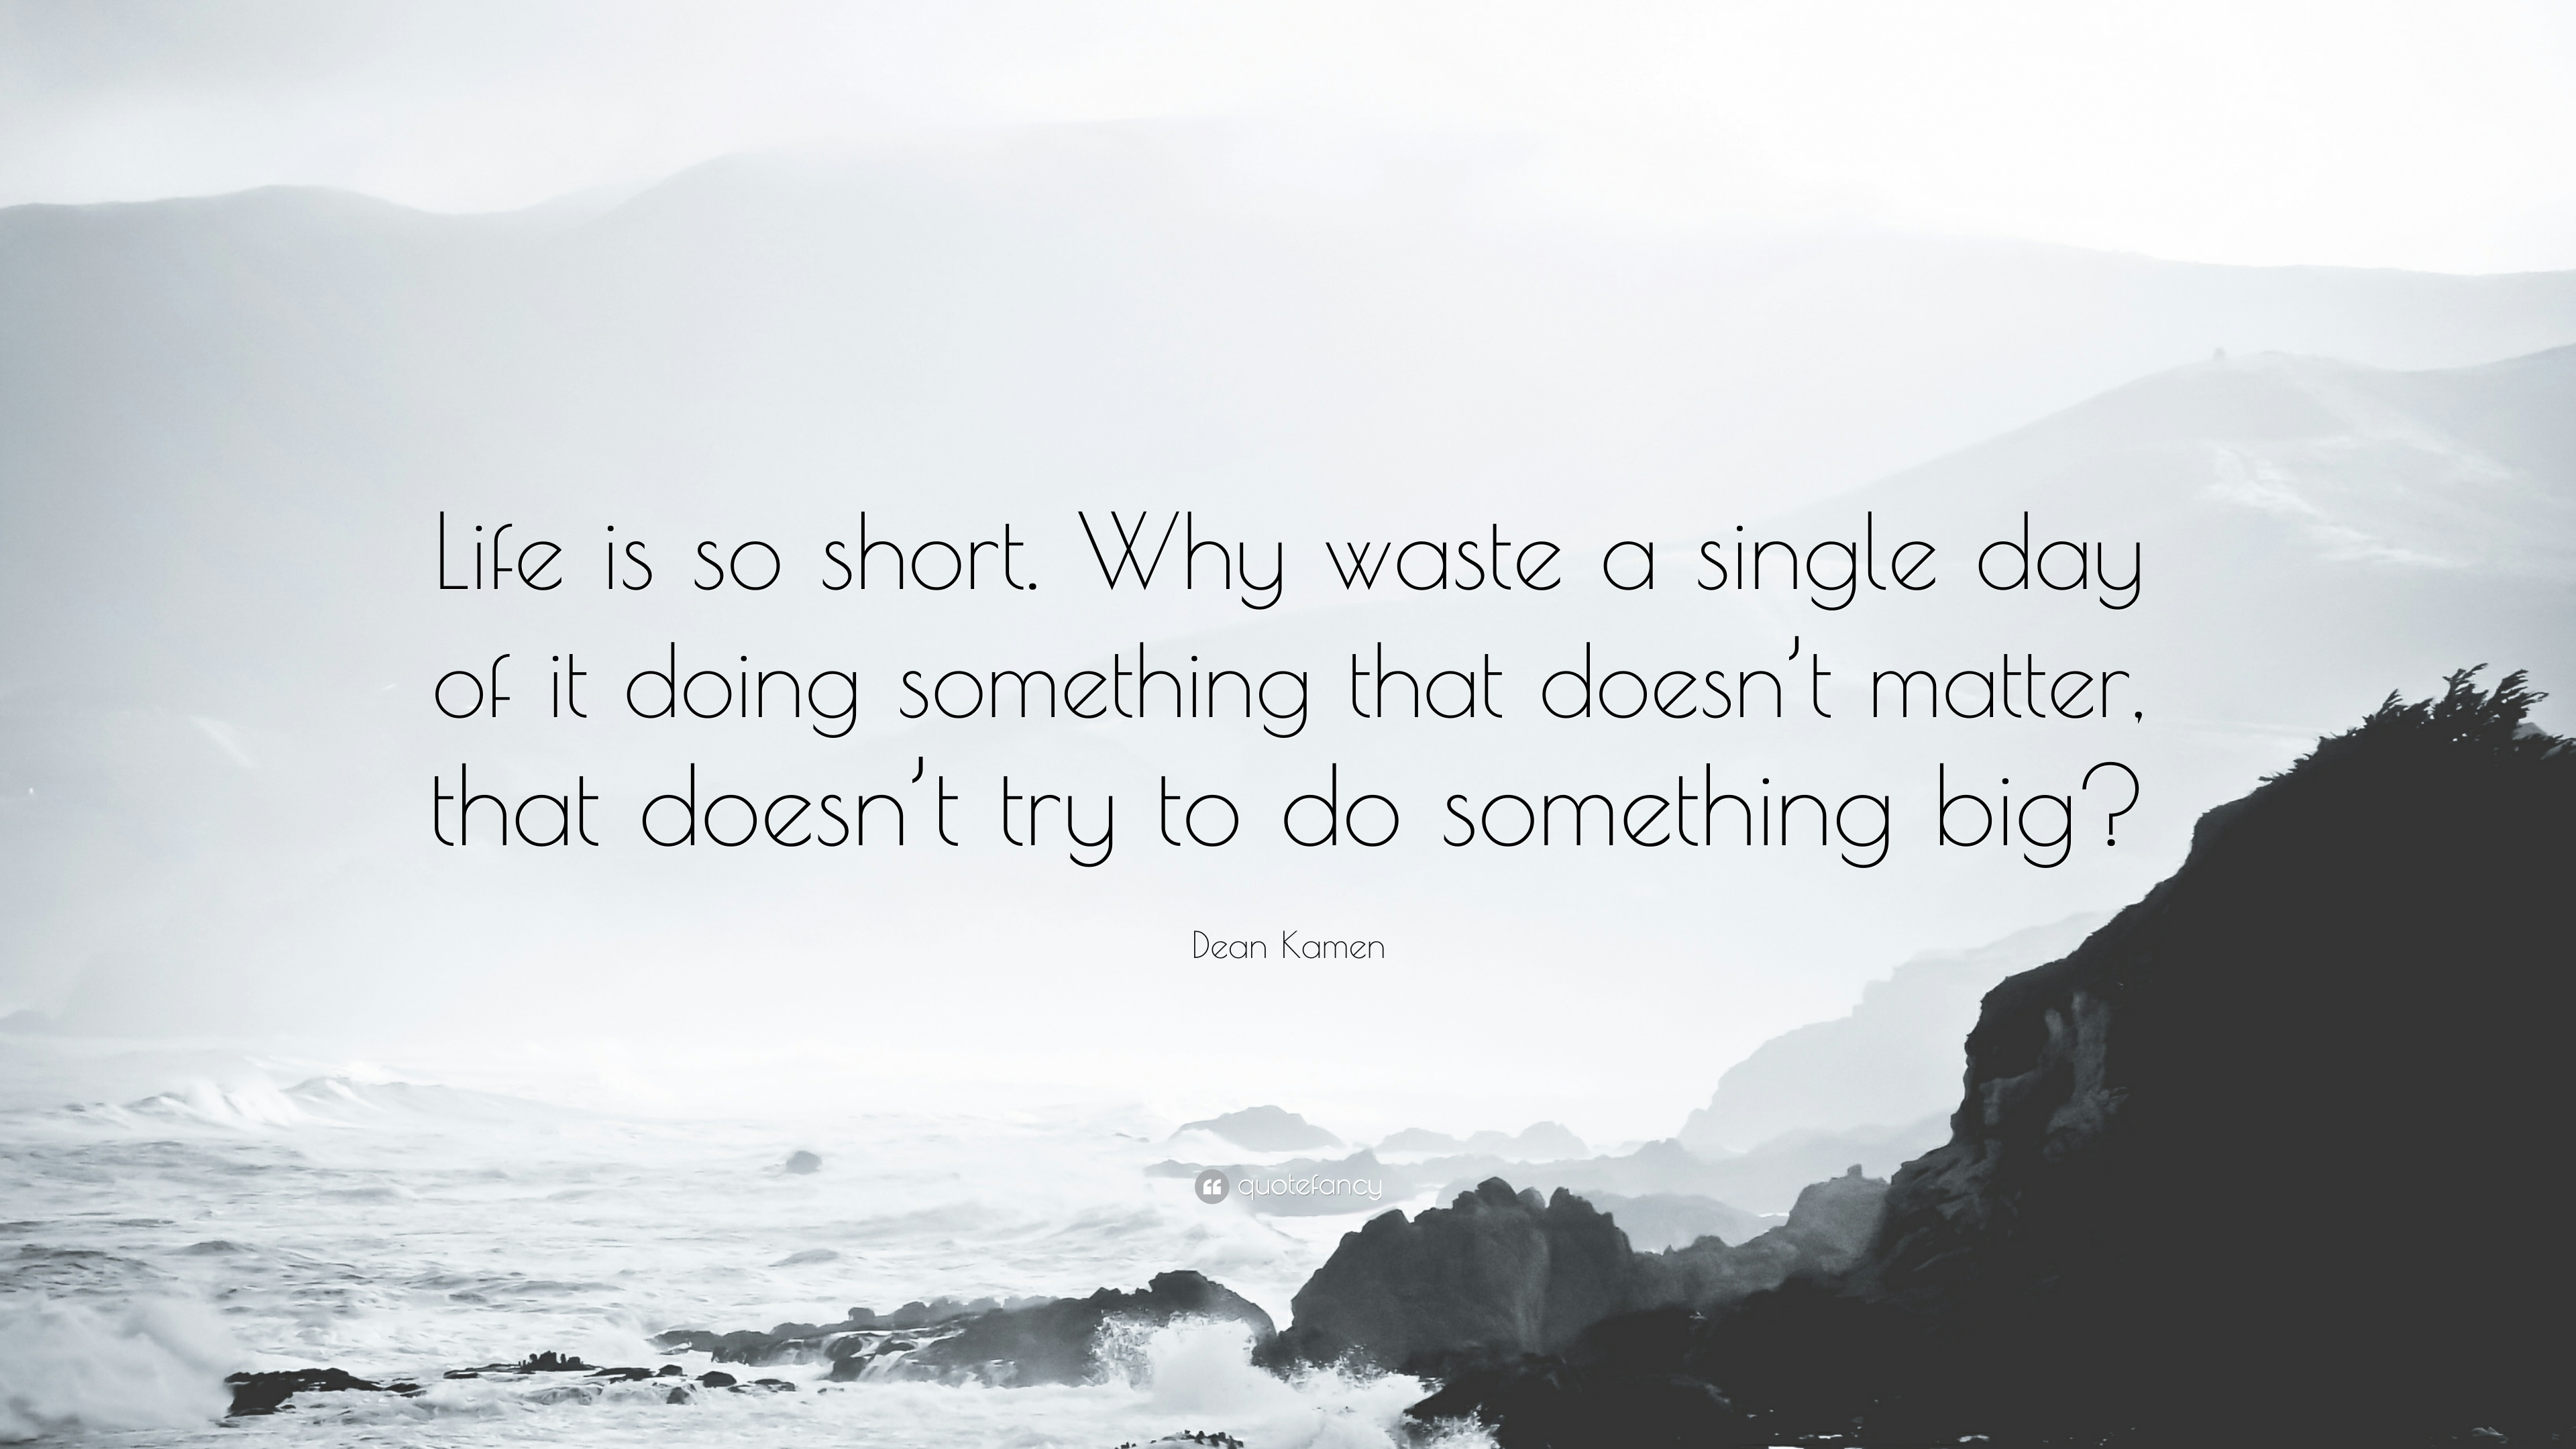 Dean Kamen Quote Life Is So Short Why Waste A Single Day Of It